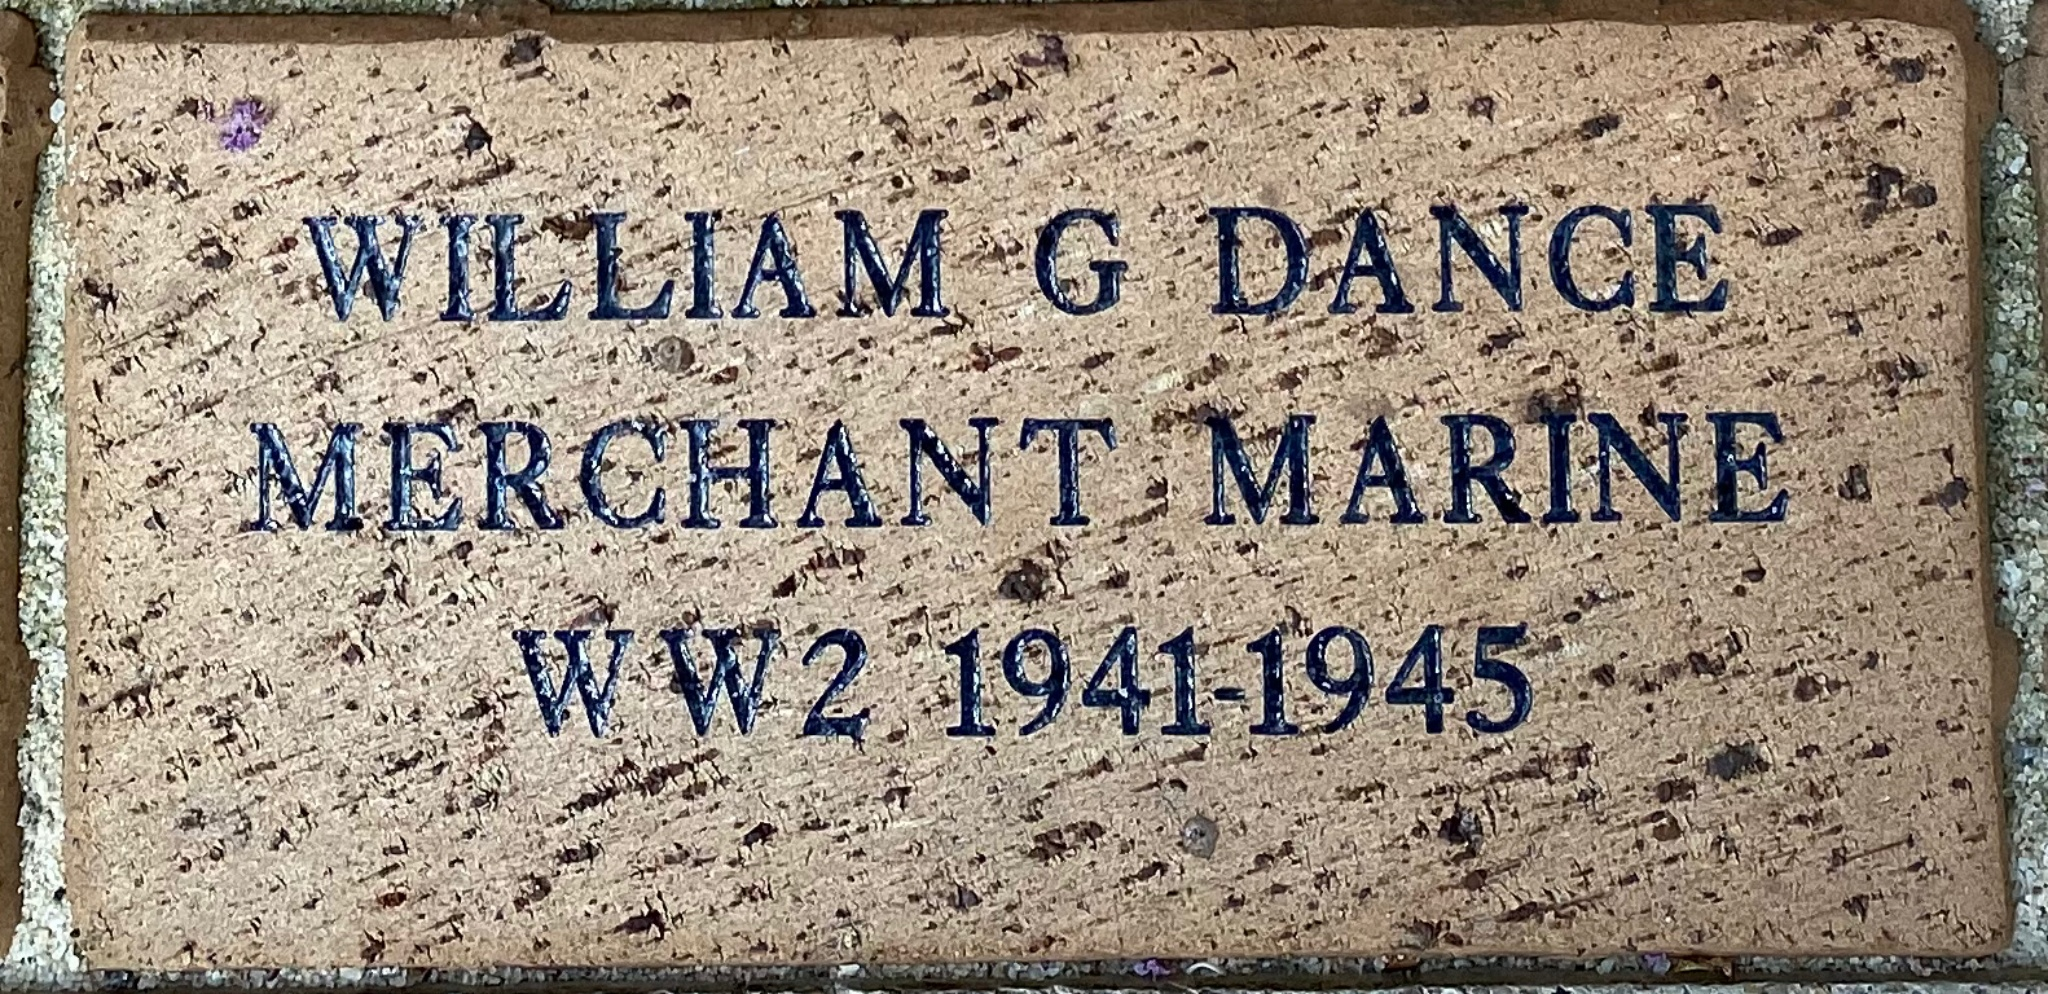 WILLIAM GEORGE DANCE MERCHANT MARINE WWII – 1941-1945